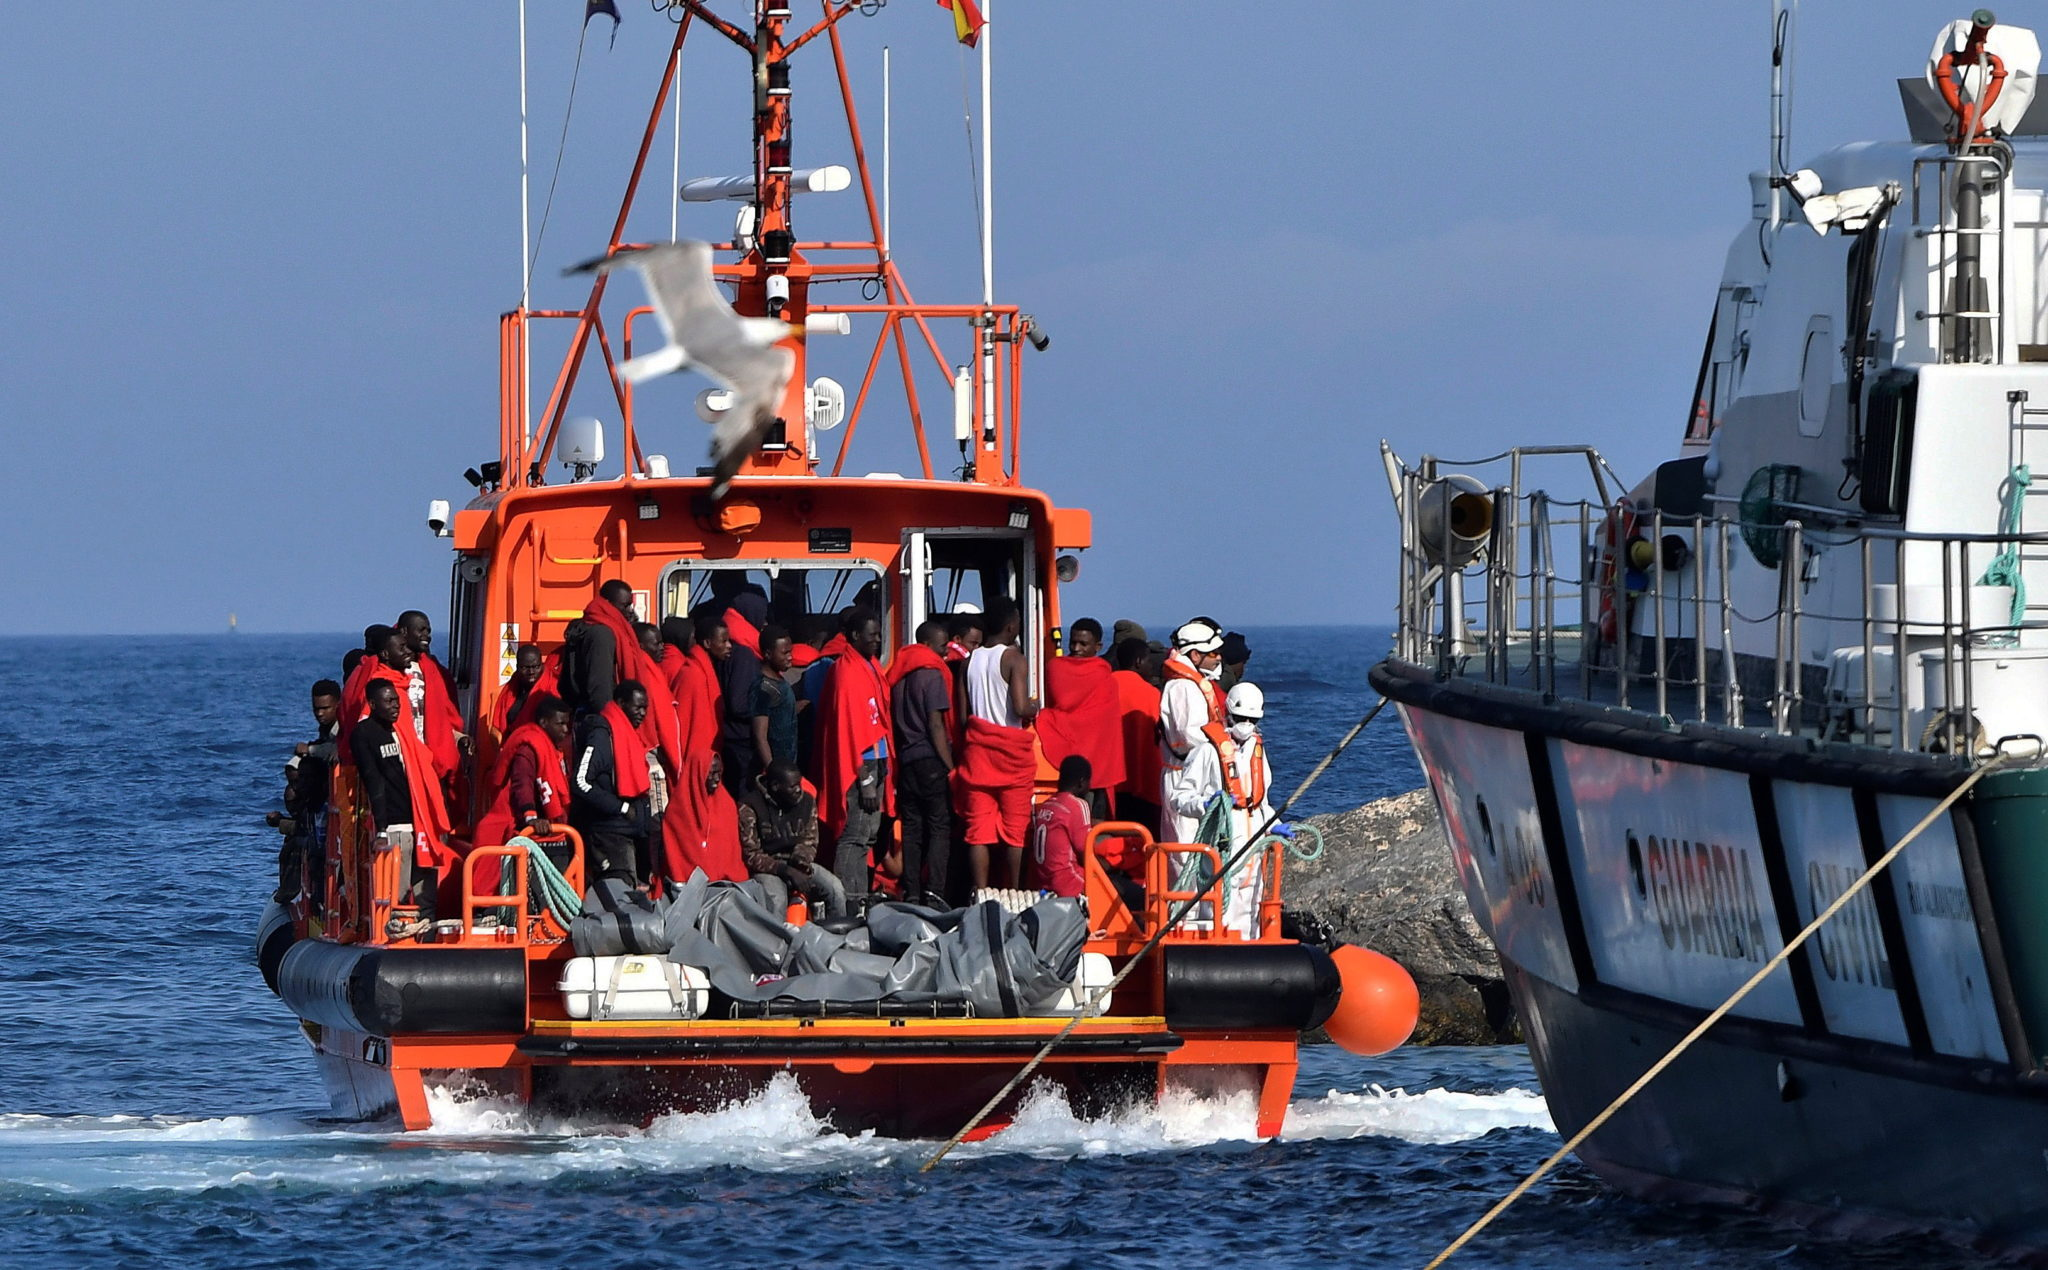 epa07667190 A hundred undocumented migrants arrive to the port on a Sea Rescue boat after they were rescued sailing on two small canoes on the Alboran Sea in Almeria, southeastern Spain, 22 June 2019.  EPA/CARLOS BARBA  Dostawca: PAP/EPA.